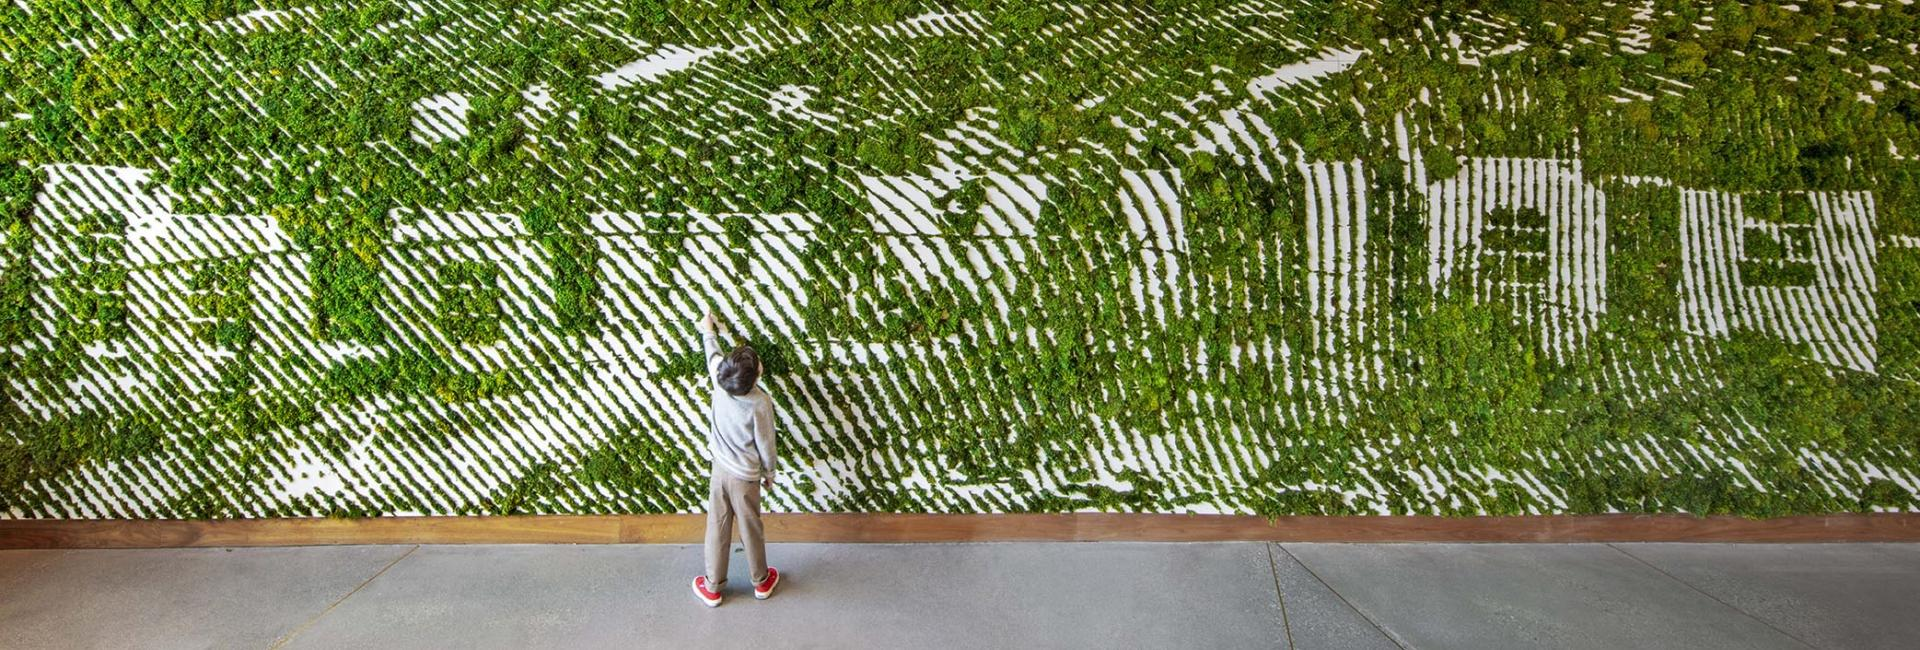 1 Hotel West Hollywood Moss Wall with Boy